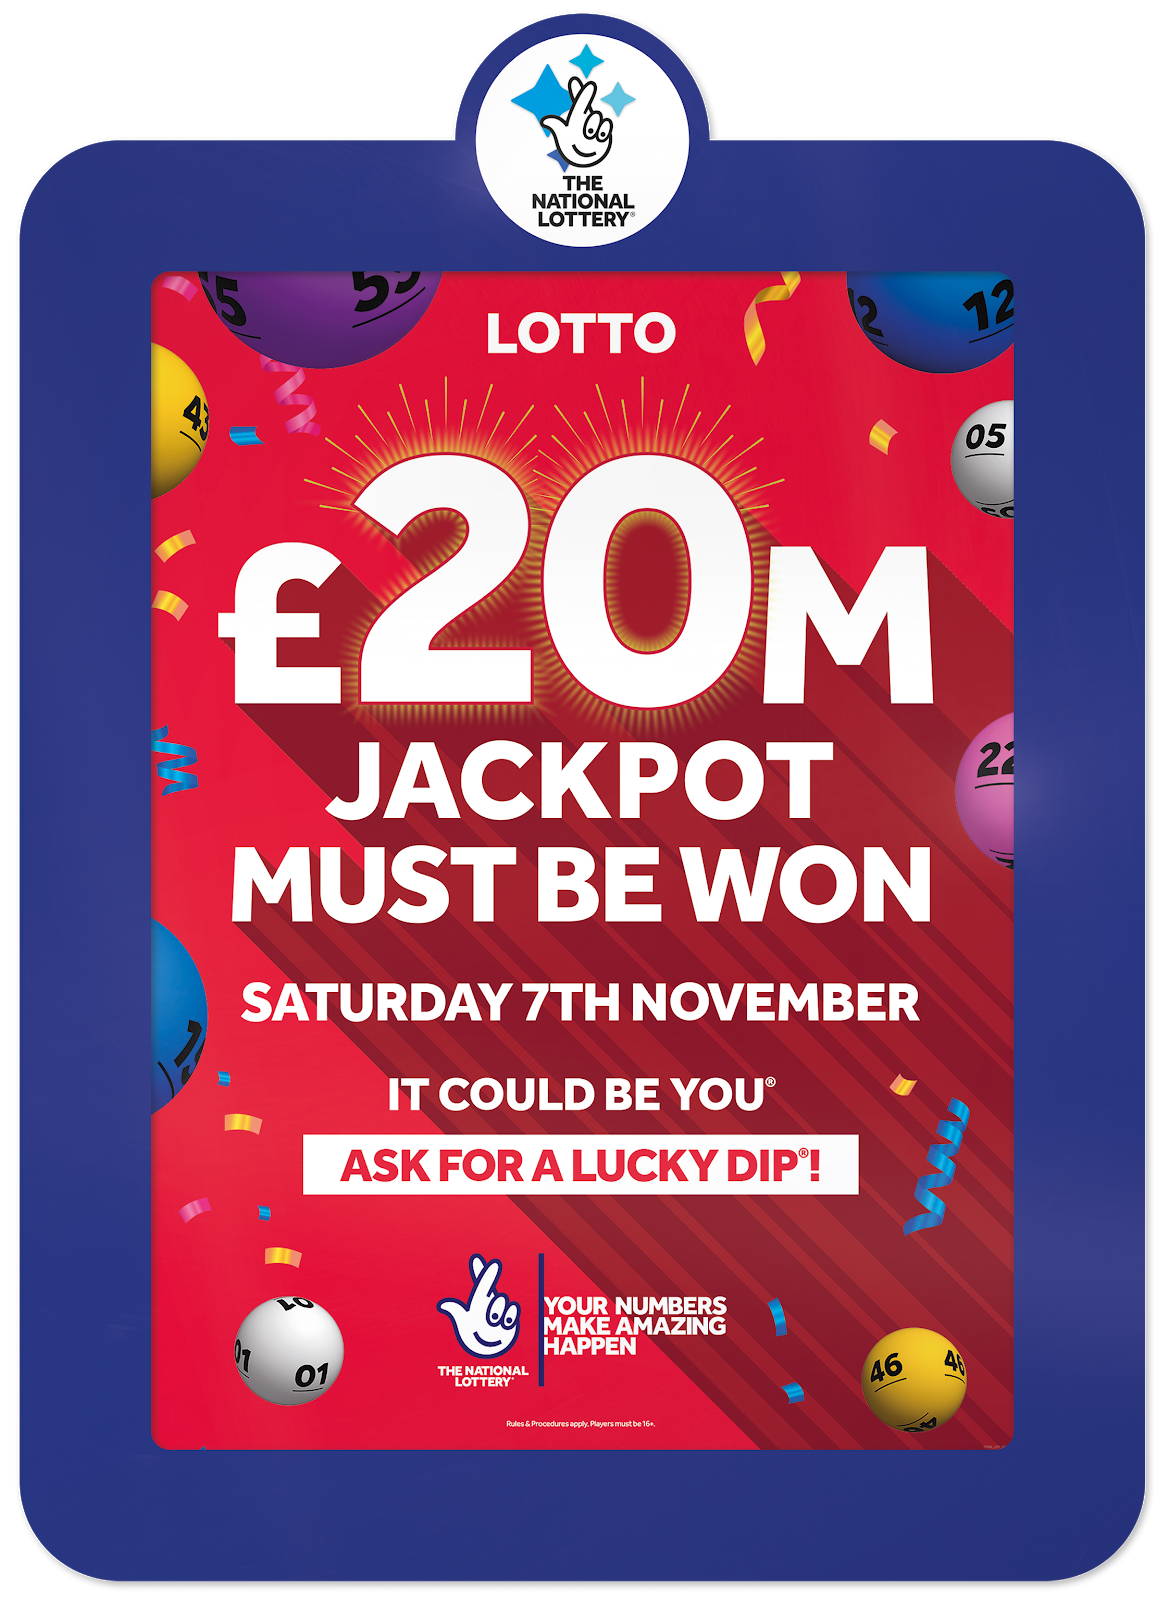 National Lottery 'Must Be Won' Draw of £20m on Saturday 7th